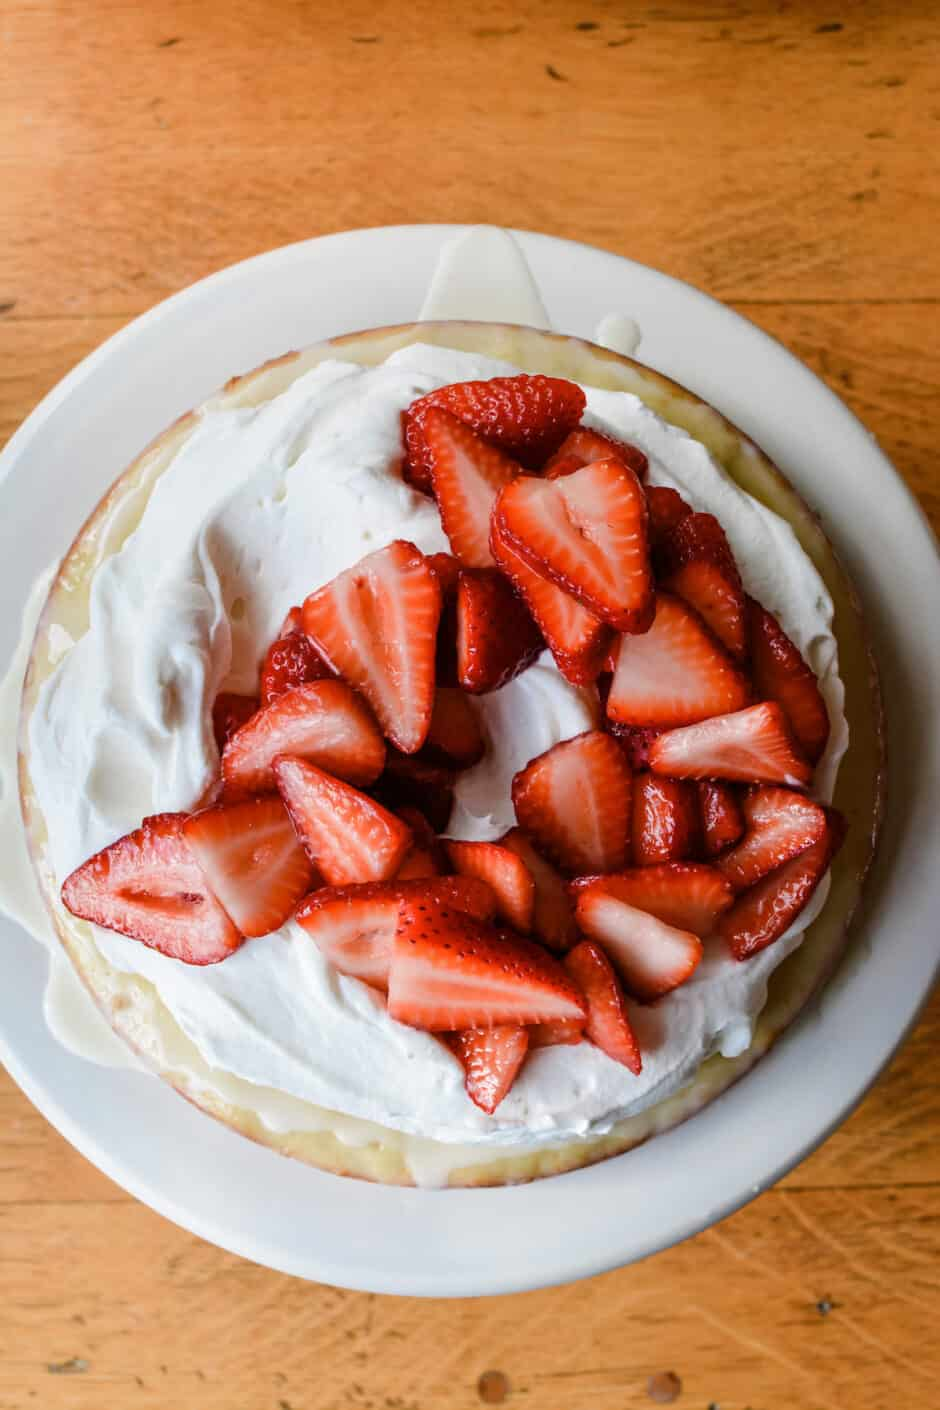 How to make a whole new take on strawberry shortcake! A Meyer lemon butter cake soaked in the classic tres leches cream and topped with juicy strawberries. #strawberryshortcake #meyerlemon #treslechescake #strawberryshortcakerecipe